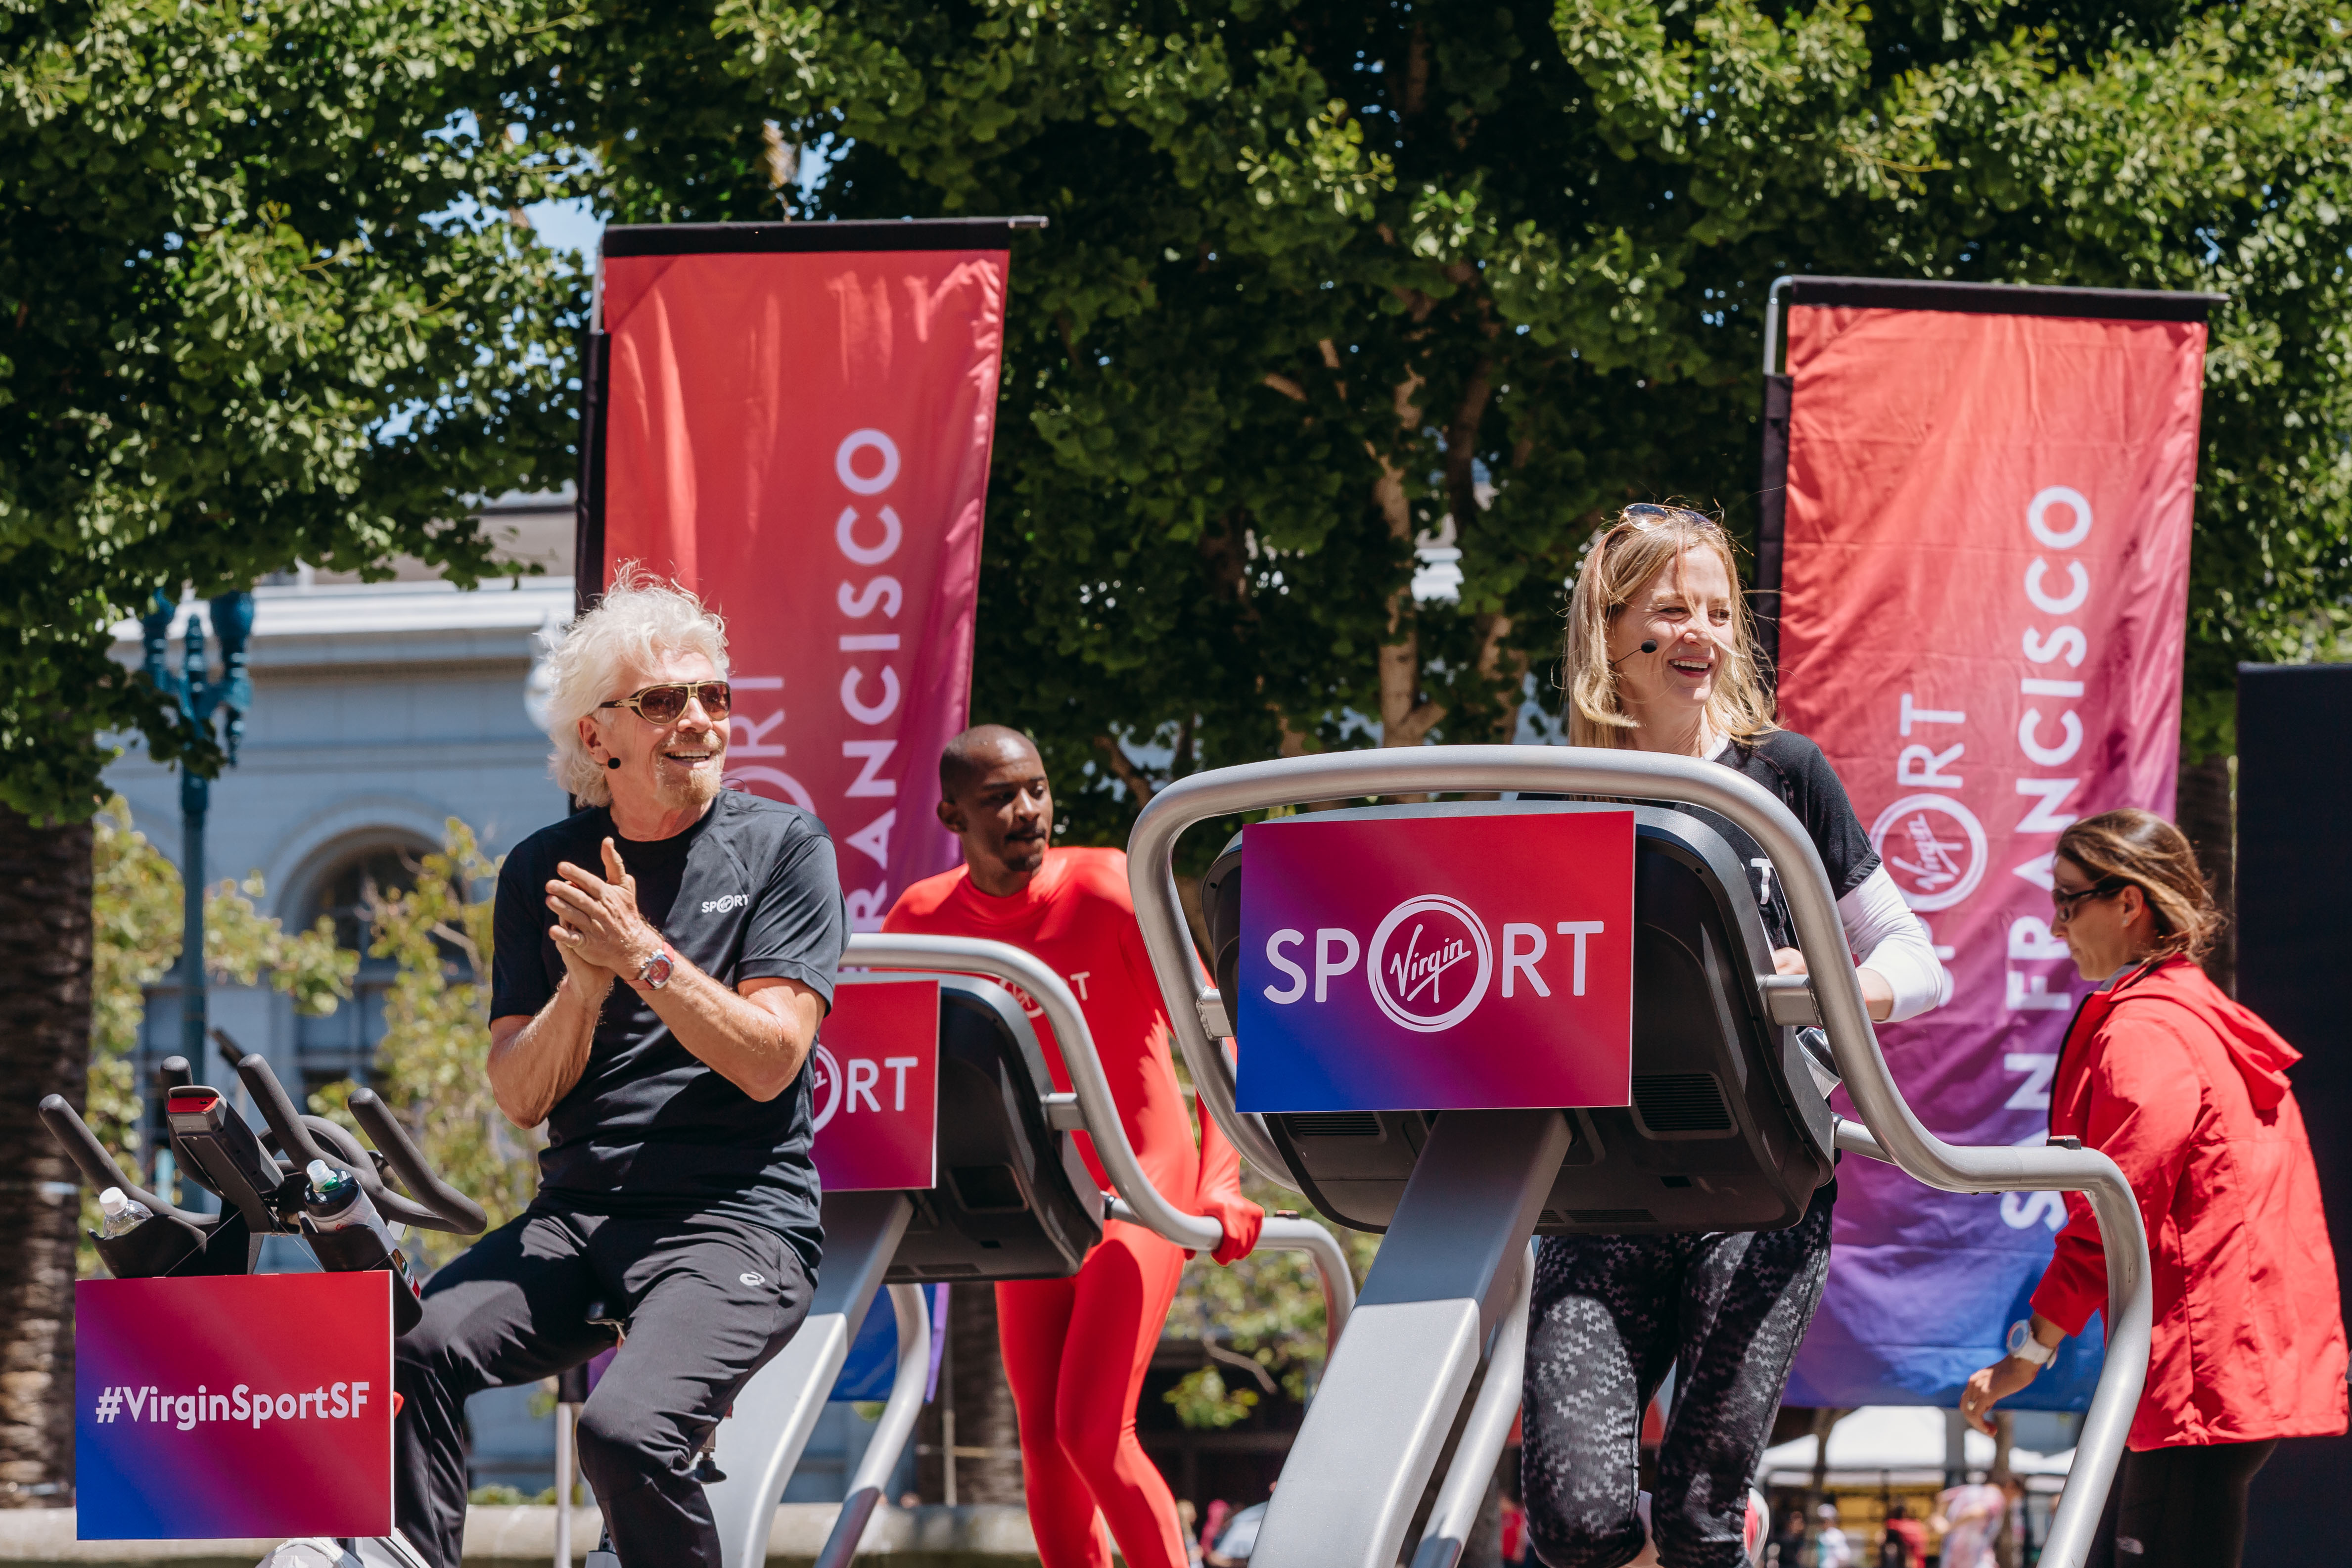 How Sir Richard Branson is encouraging healthy habits with Virgin Sport's new 'fitness festivals'